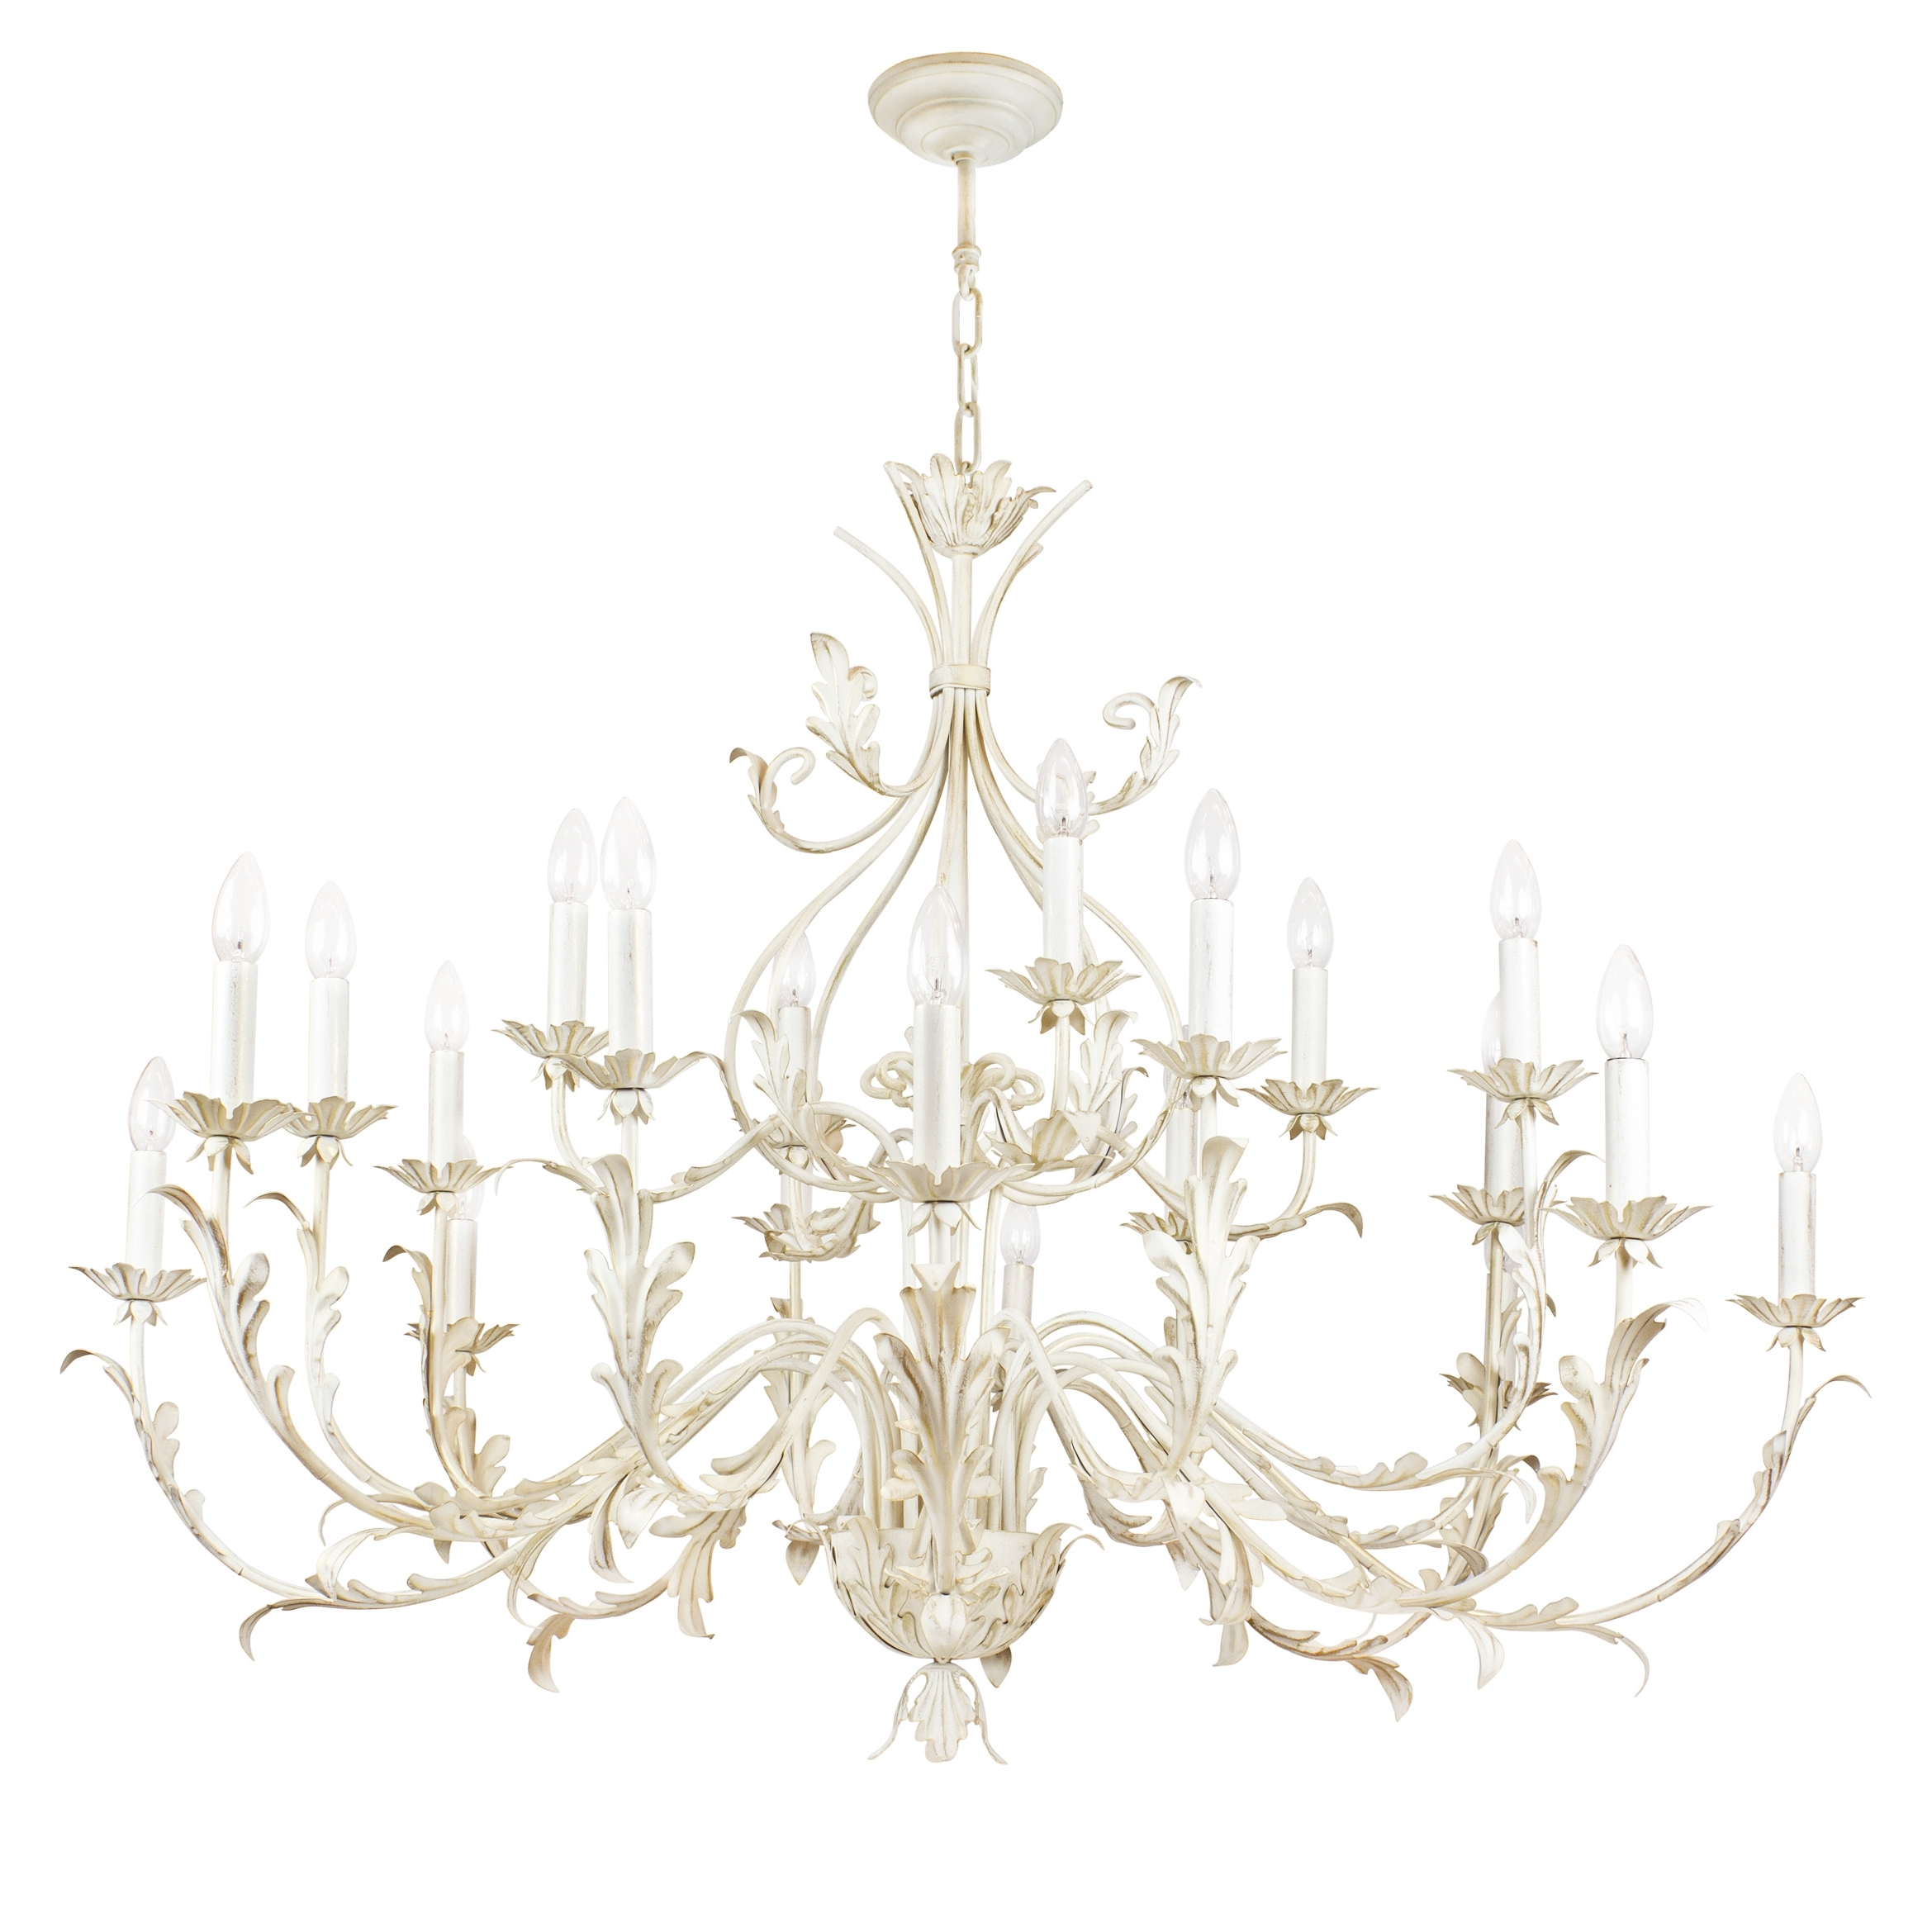 Hamilton – Villaverde London Throughout Most Up To Date Cream Gold Chandelier (View 11 of 15)